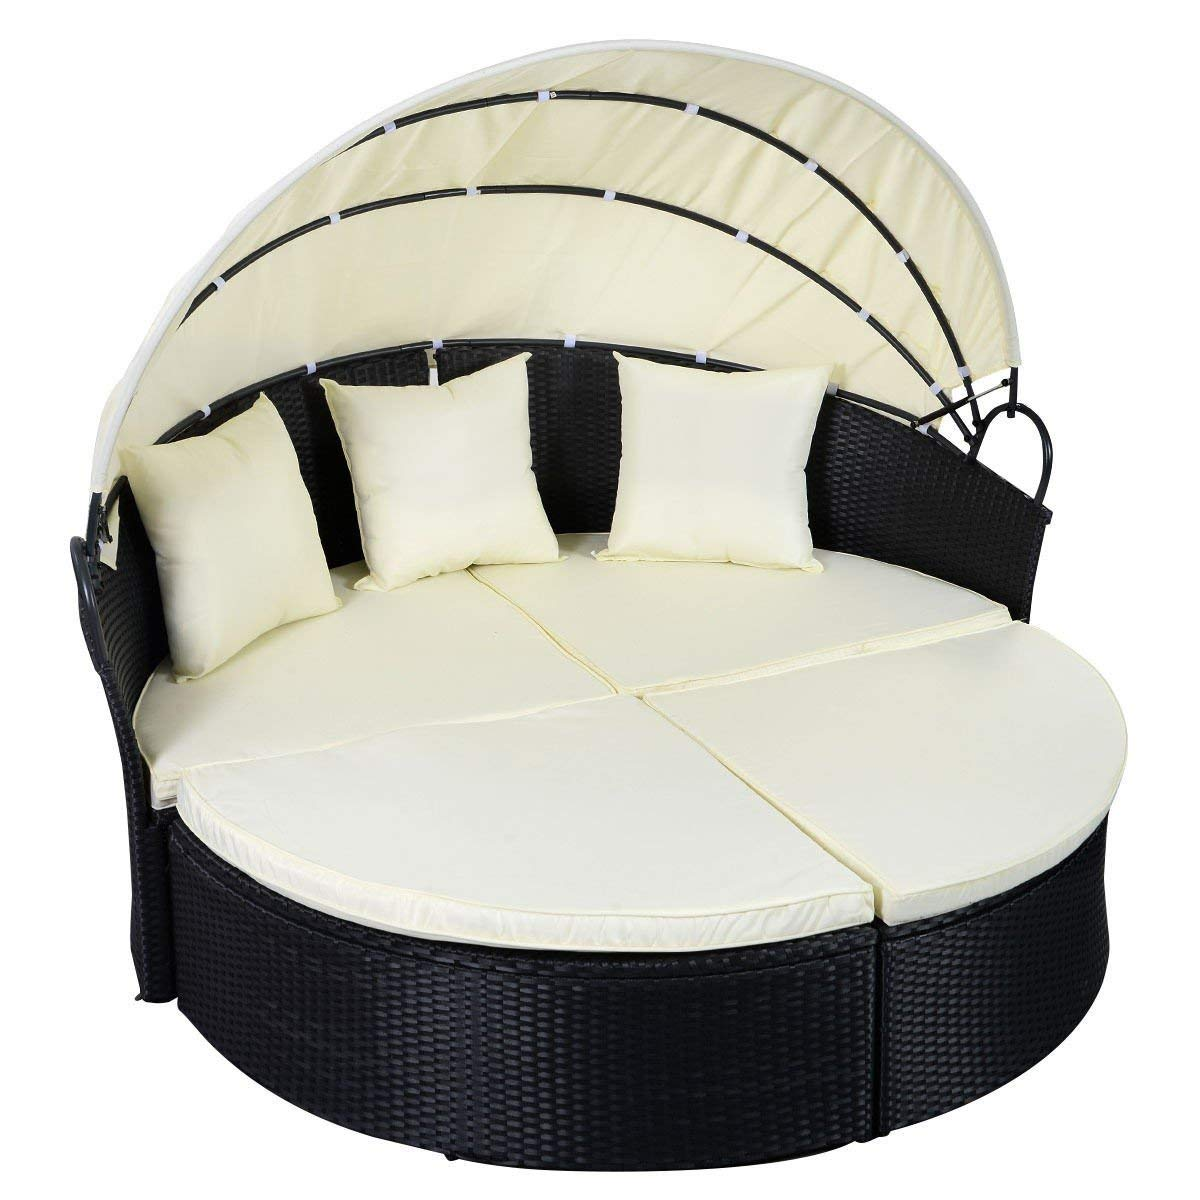 Svitlife Outdoor Patio Rattan Round Retractable Canopy Daybed Canopy Daybed Wicker Rattan Furniture Black 2 1 Sunbed